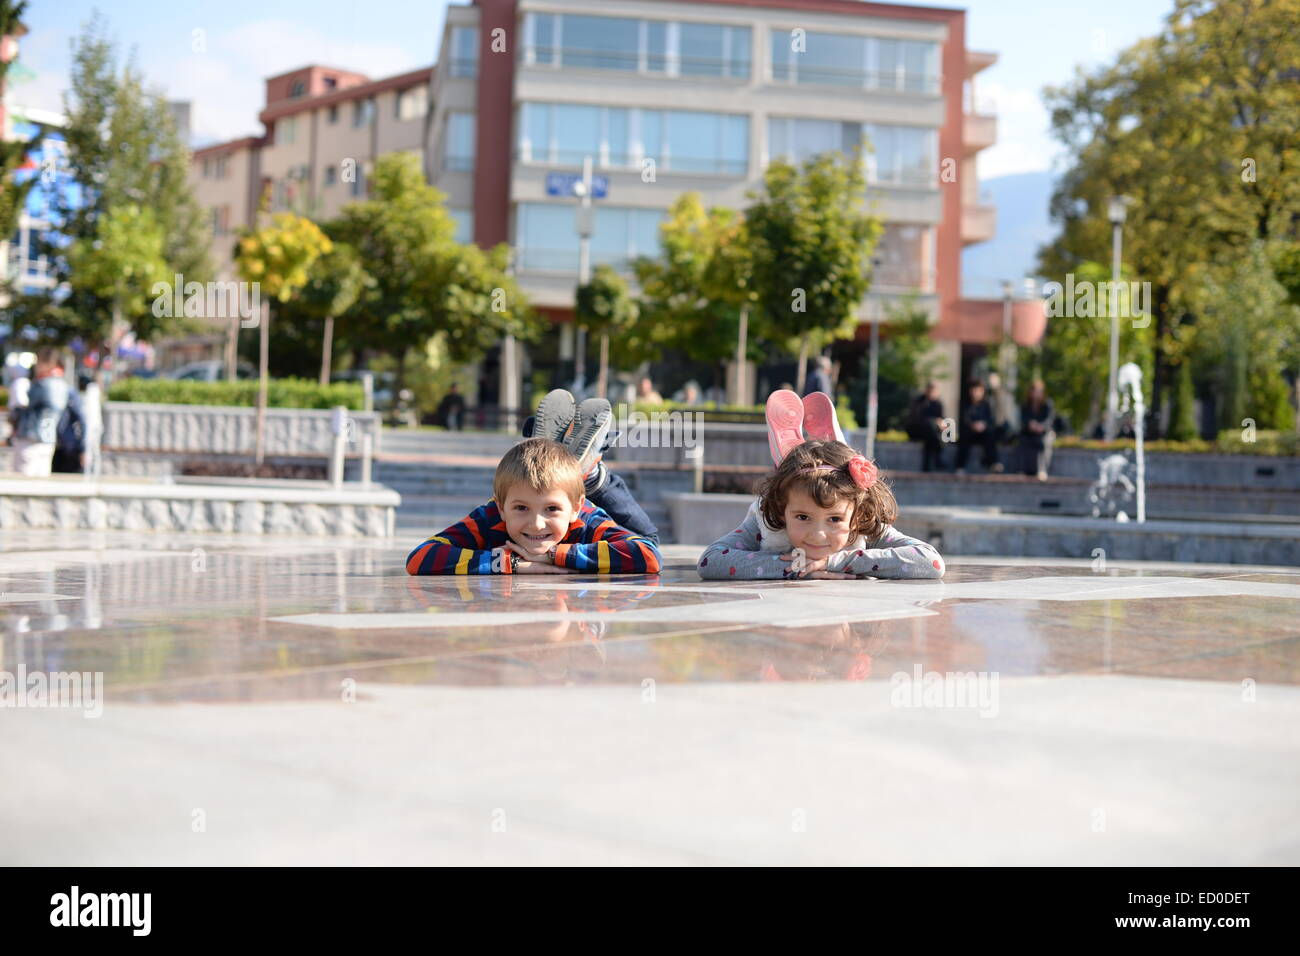 Little boy (6-7) and girl (4-5) playing outside - Stock Image